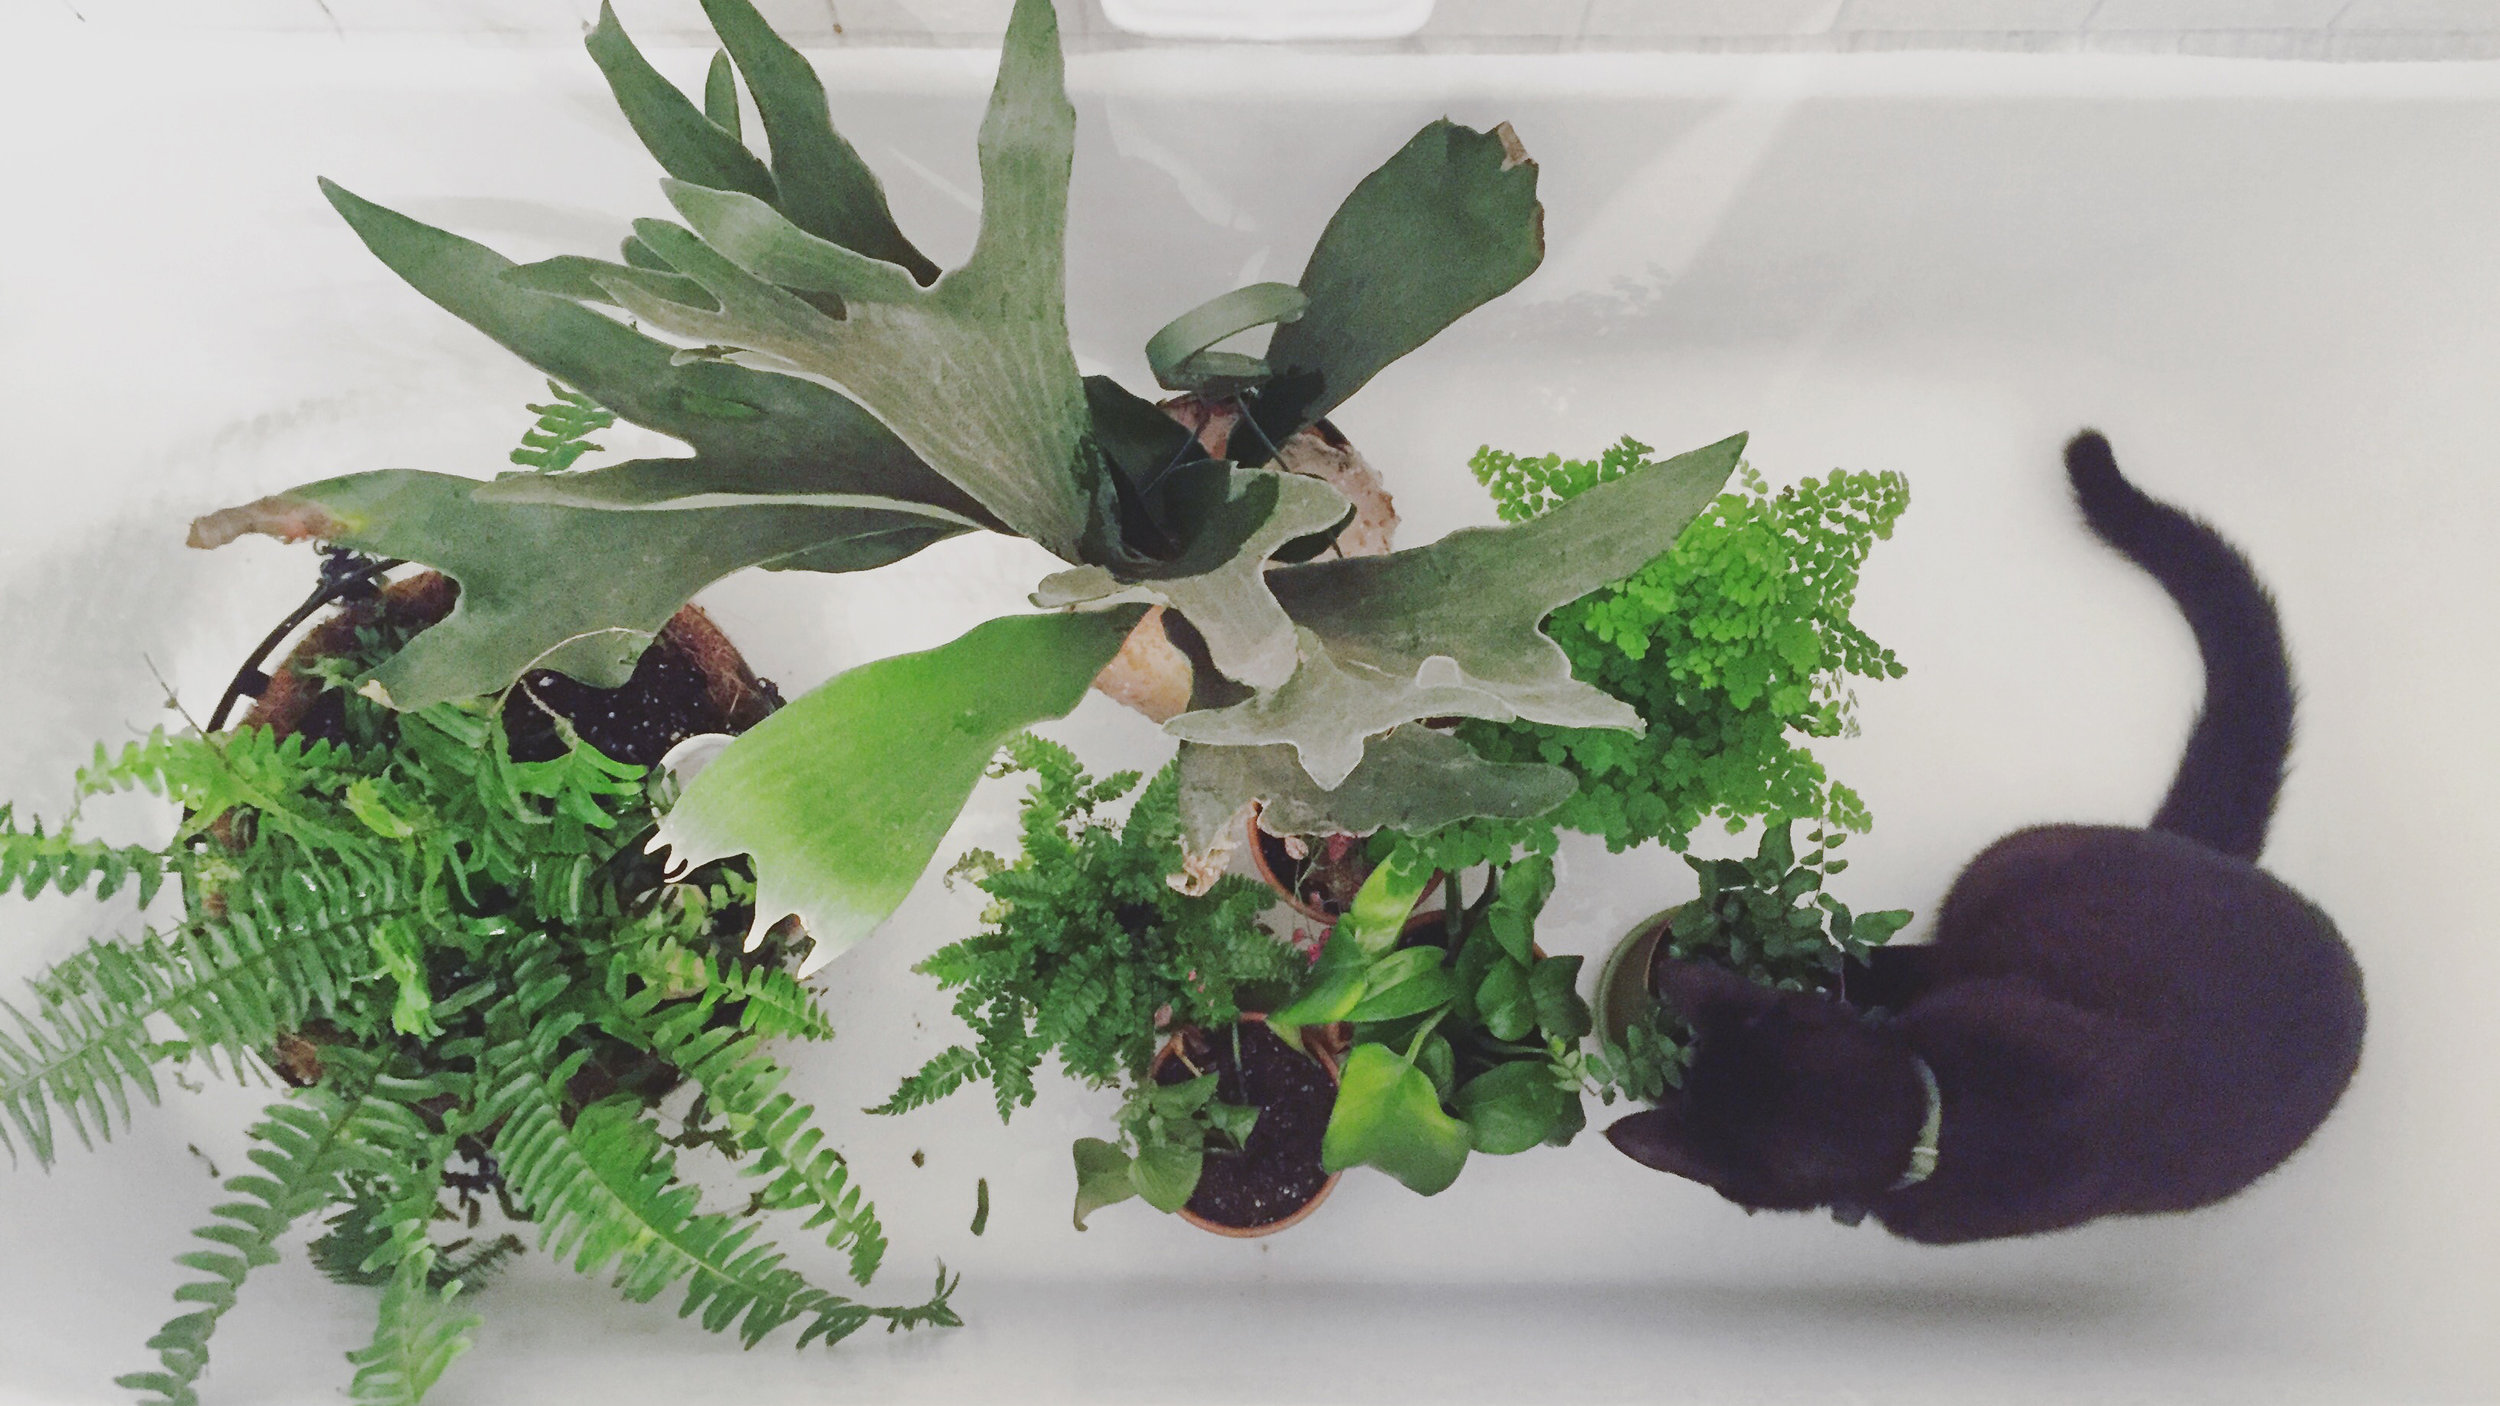 Houseplants (and Pierre) in the bathtub